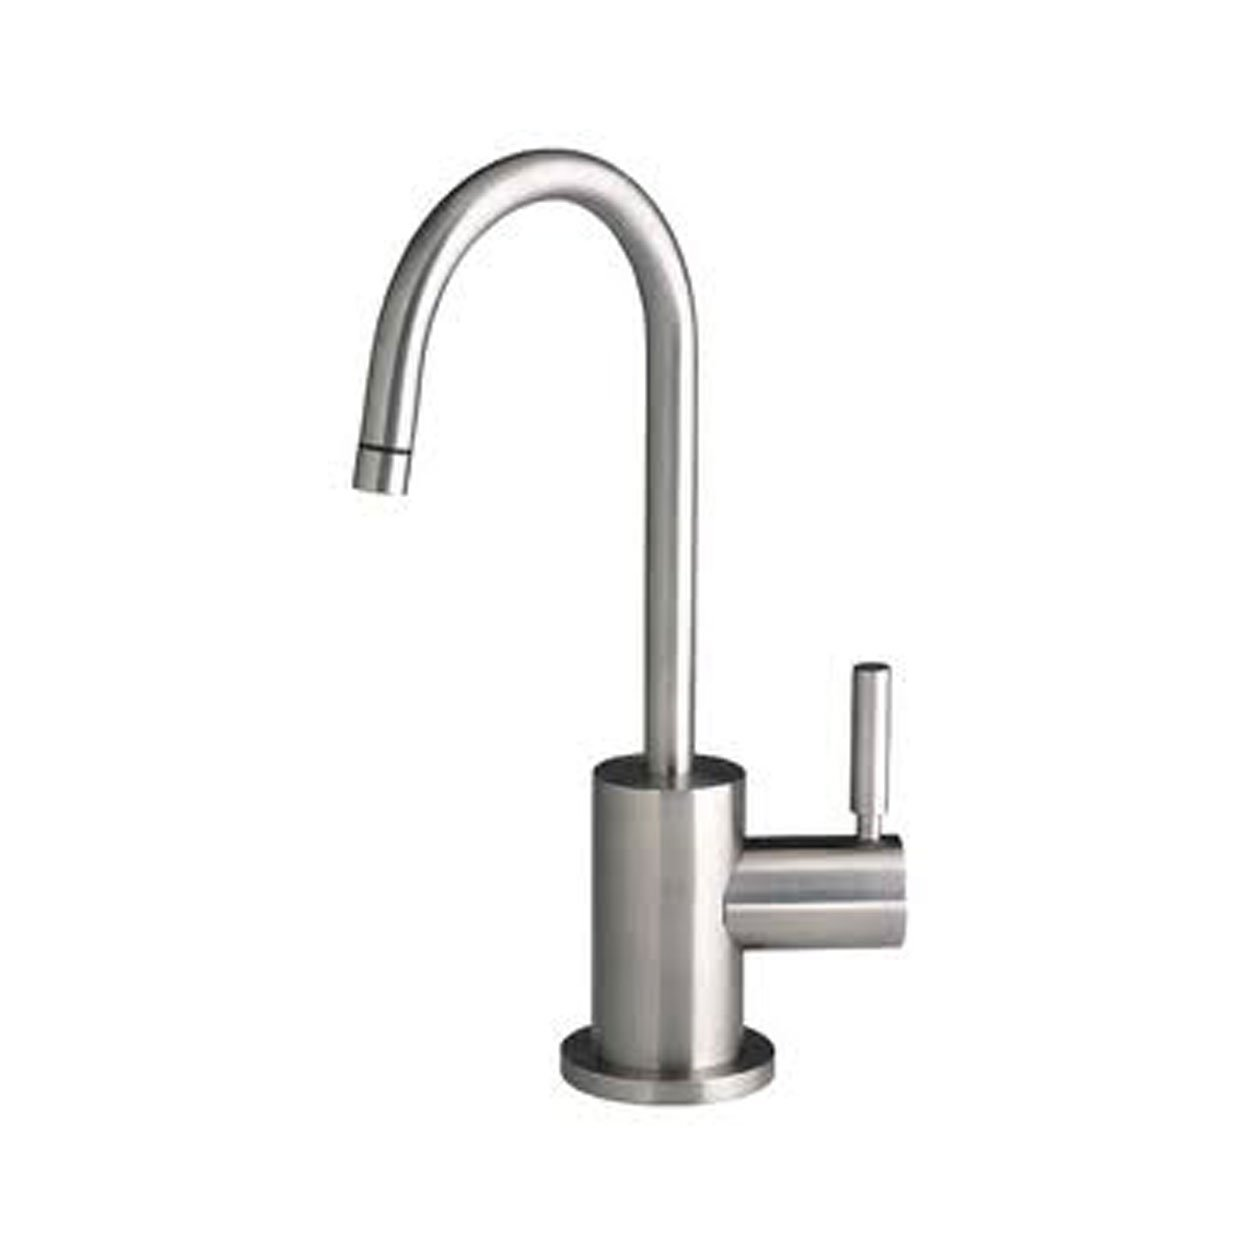 Waterstone 1400H-SN Parche Filtration Faucet Hot Only Single Handle, Satin Nickel